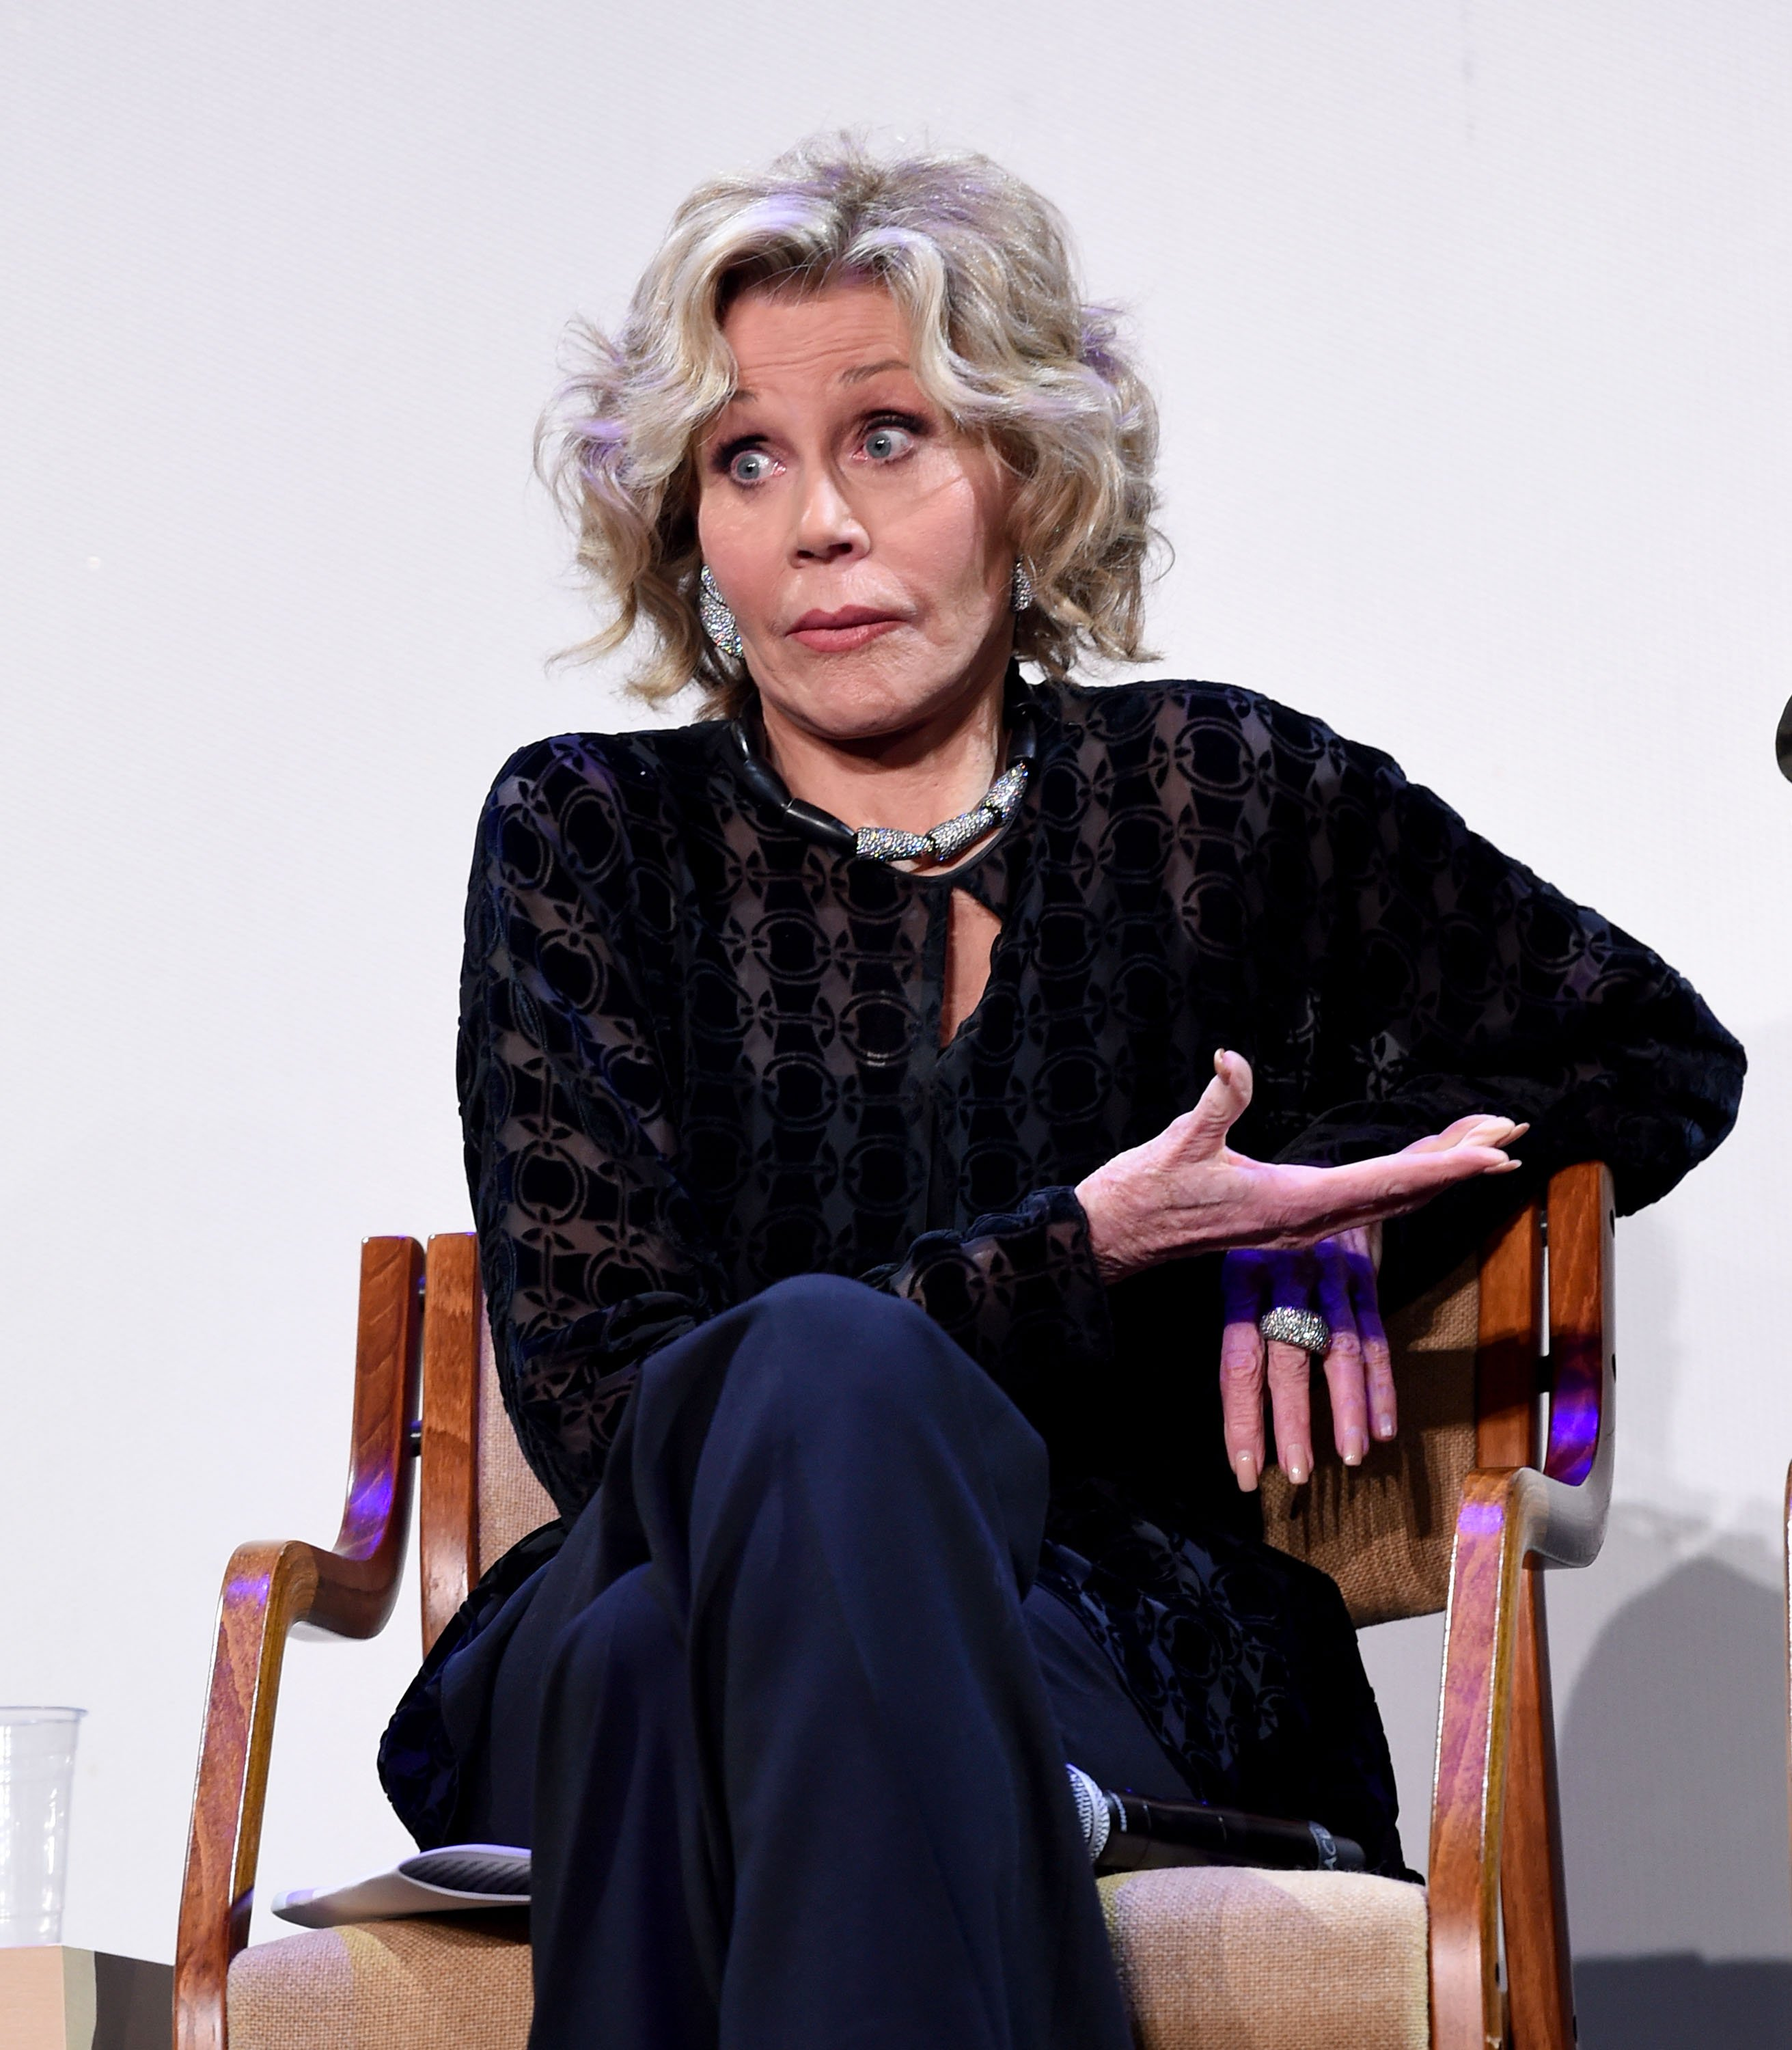 Jane Fonda on March 09, 2019 in Los Angeles, California | Source: Getty Images